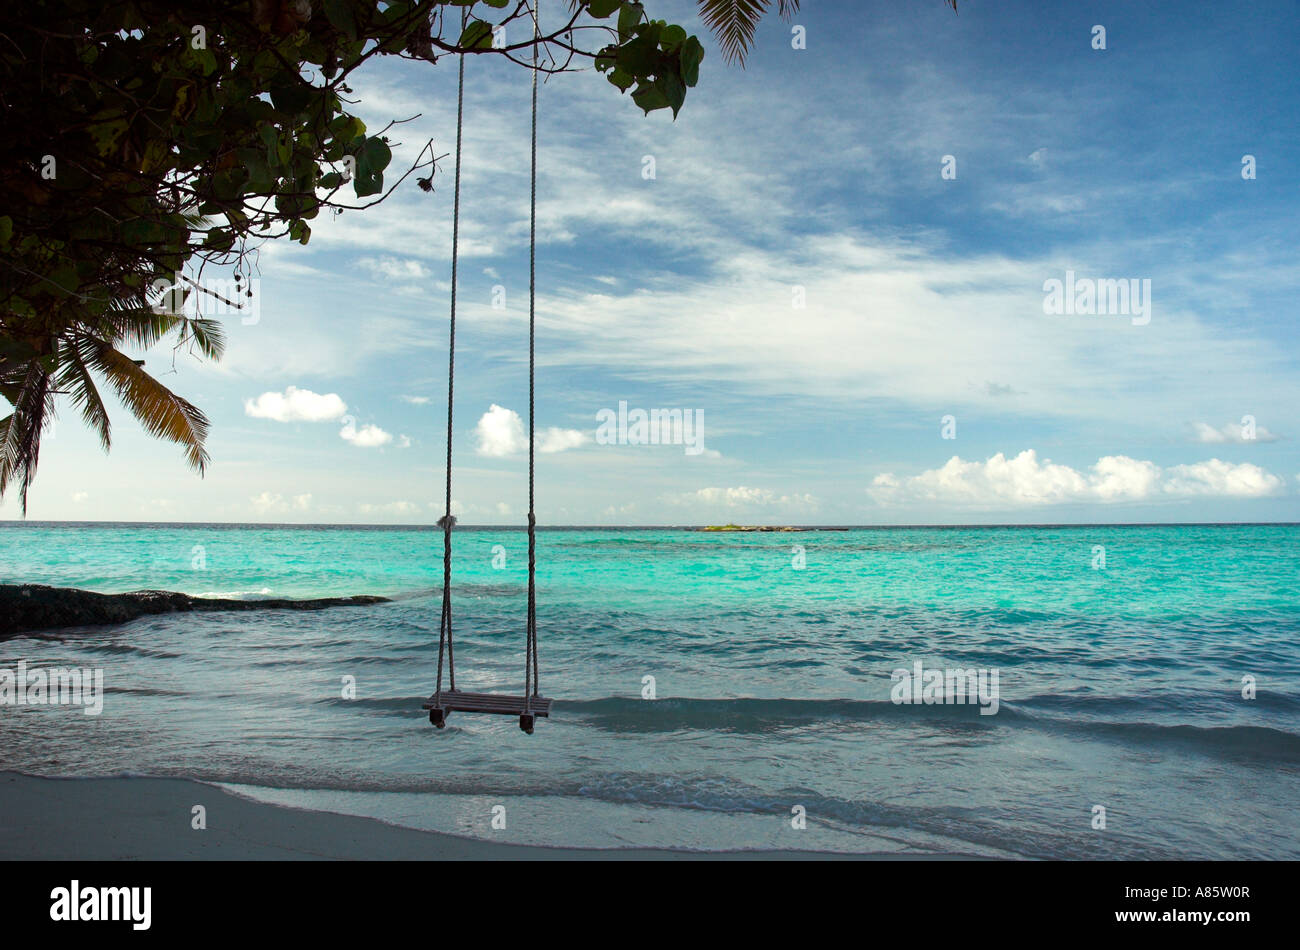 A beach swing over the shallow water of the sea in the for Swing over water